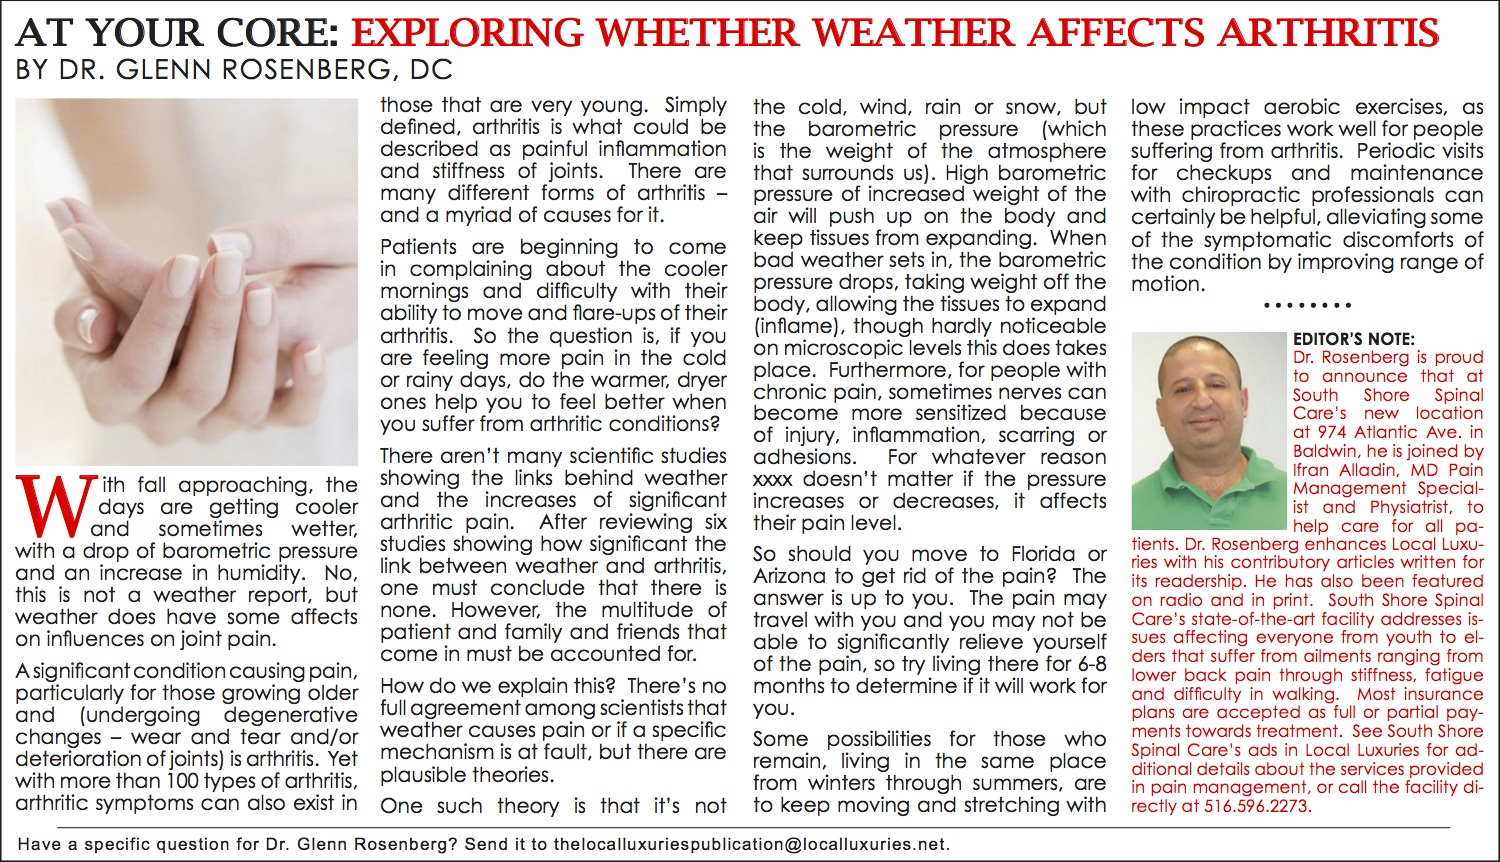 At Your Core: Exploring Whether Weather Affects Arthritis - October